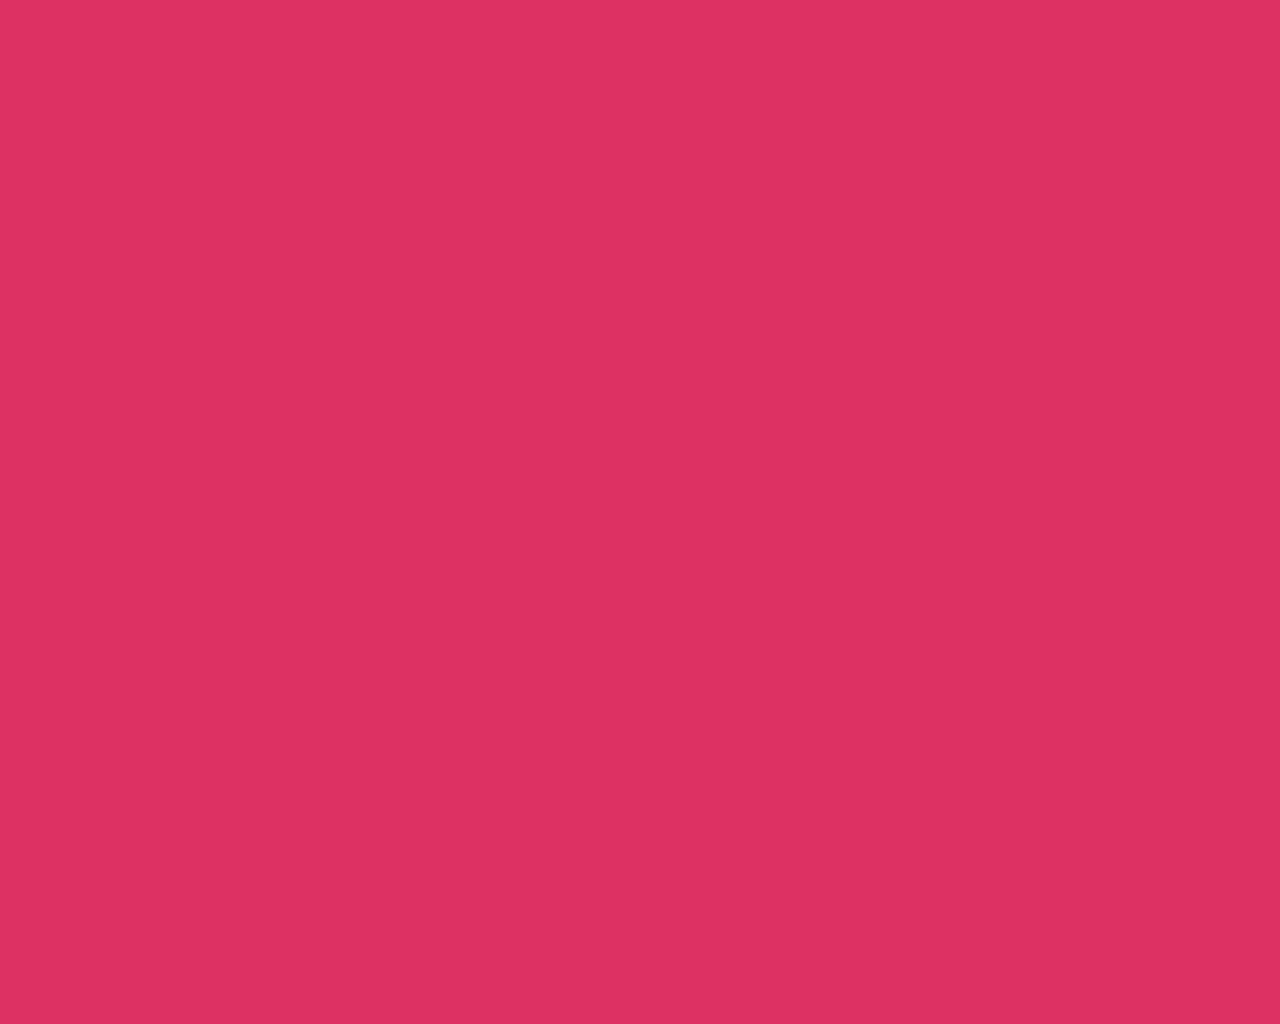 1280x1024 Cherry Solid Color Background